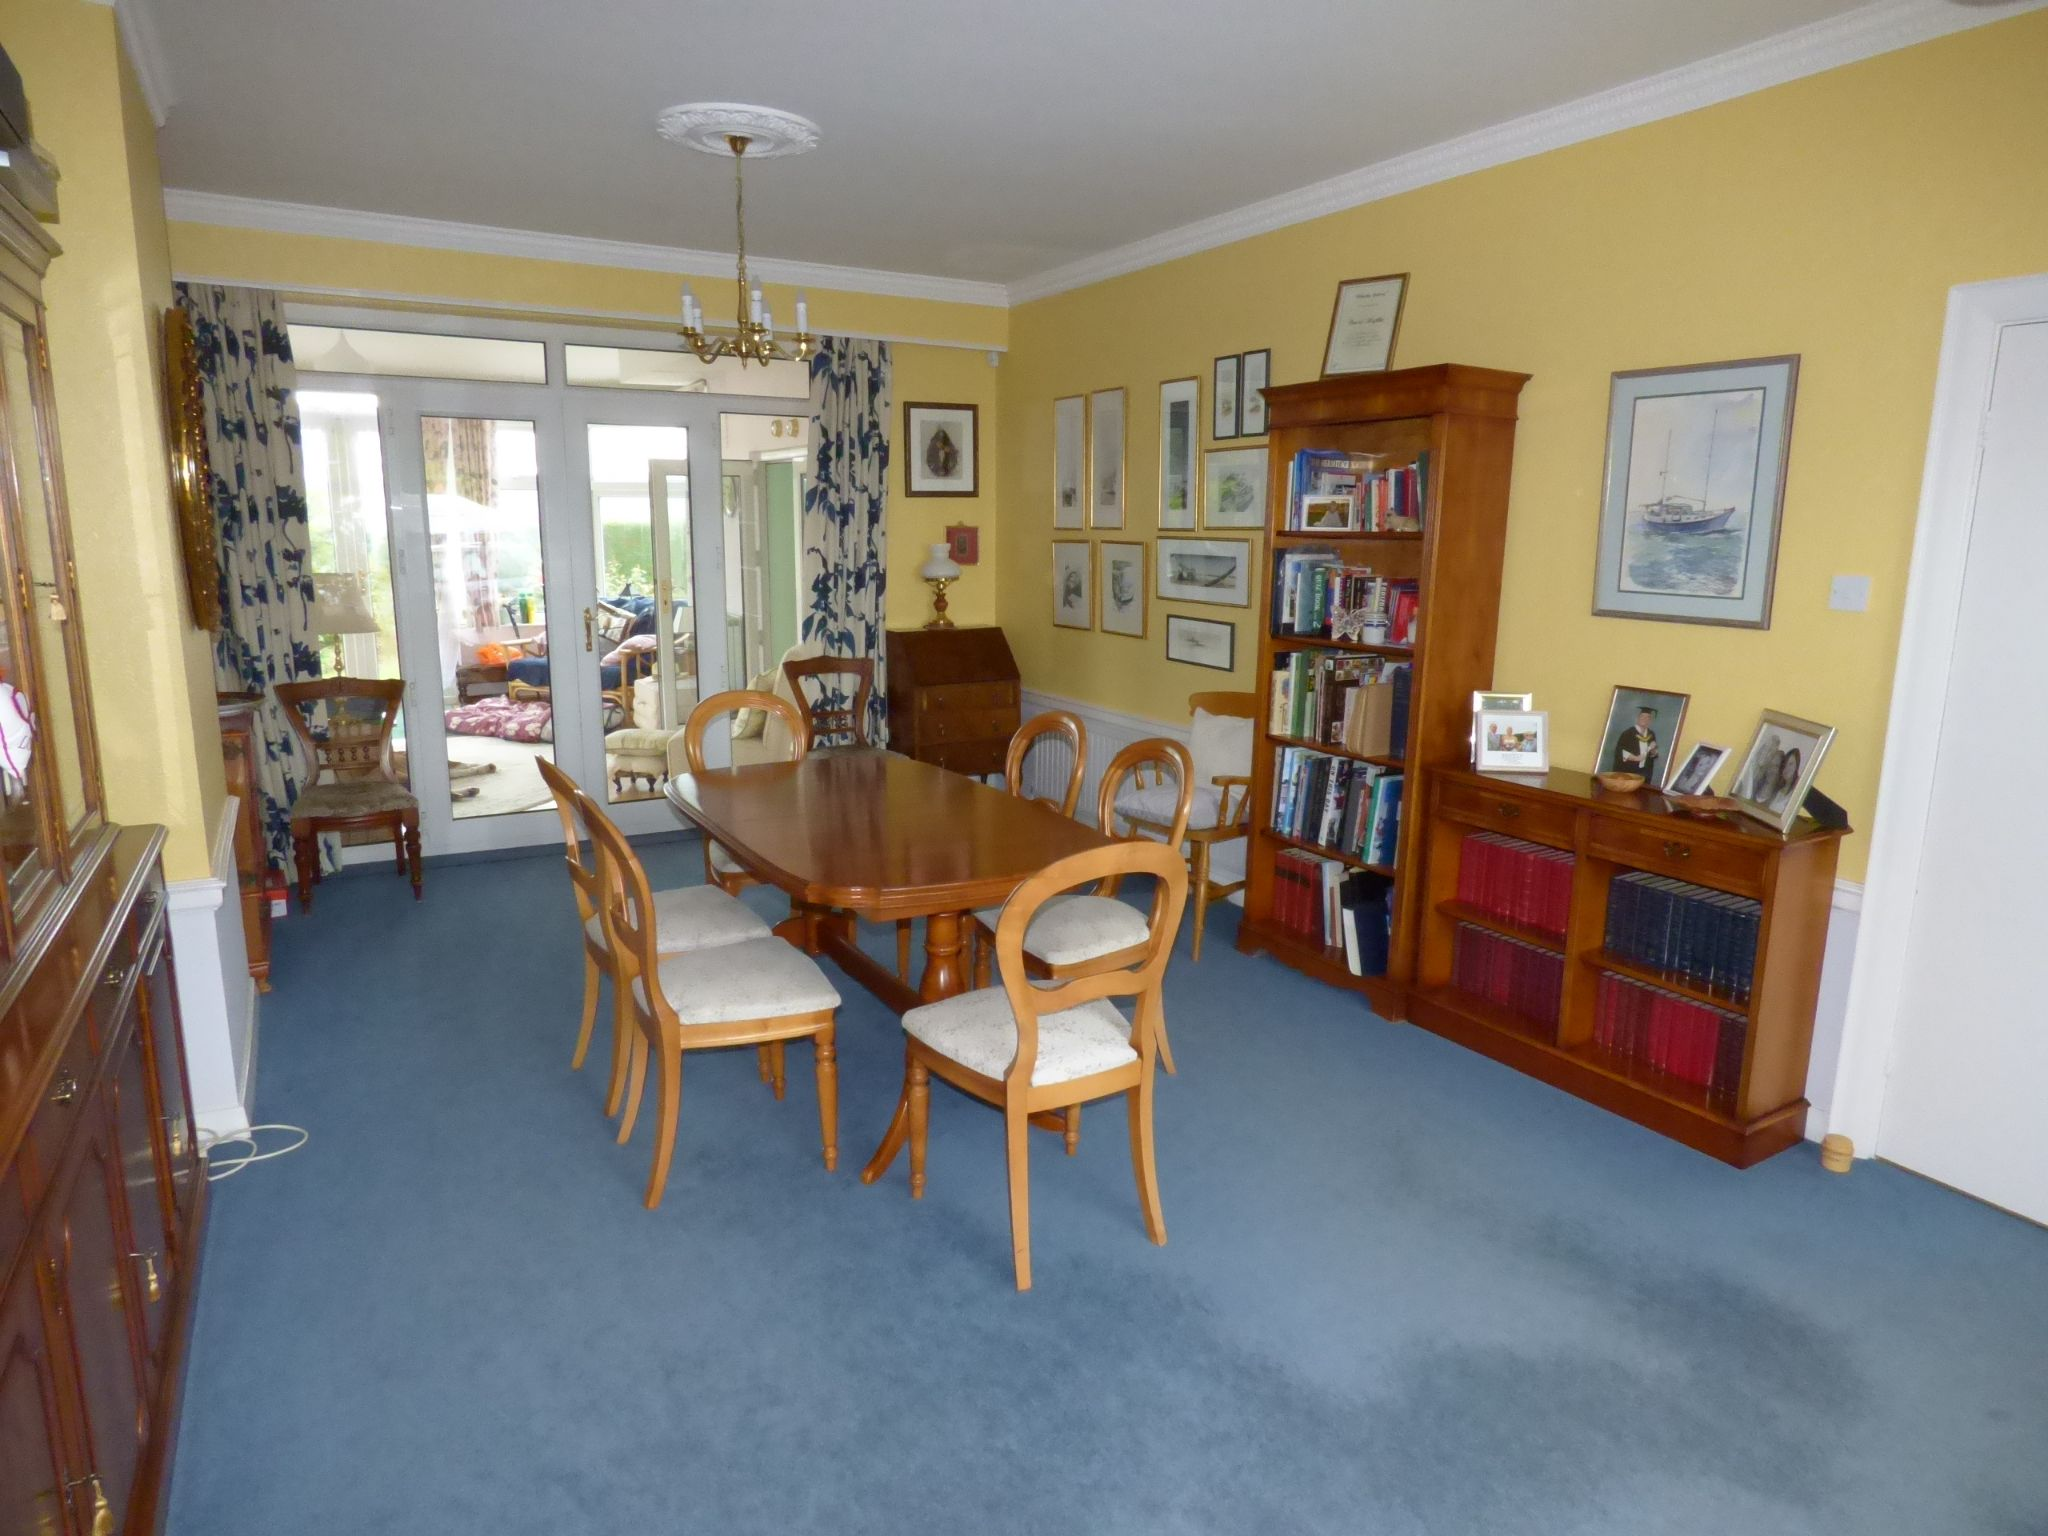 5 Bedroom Detached Bungalow For Sale - Photograph 7